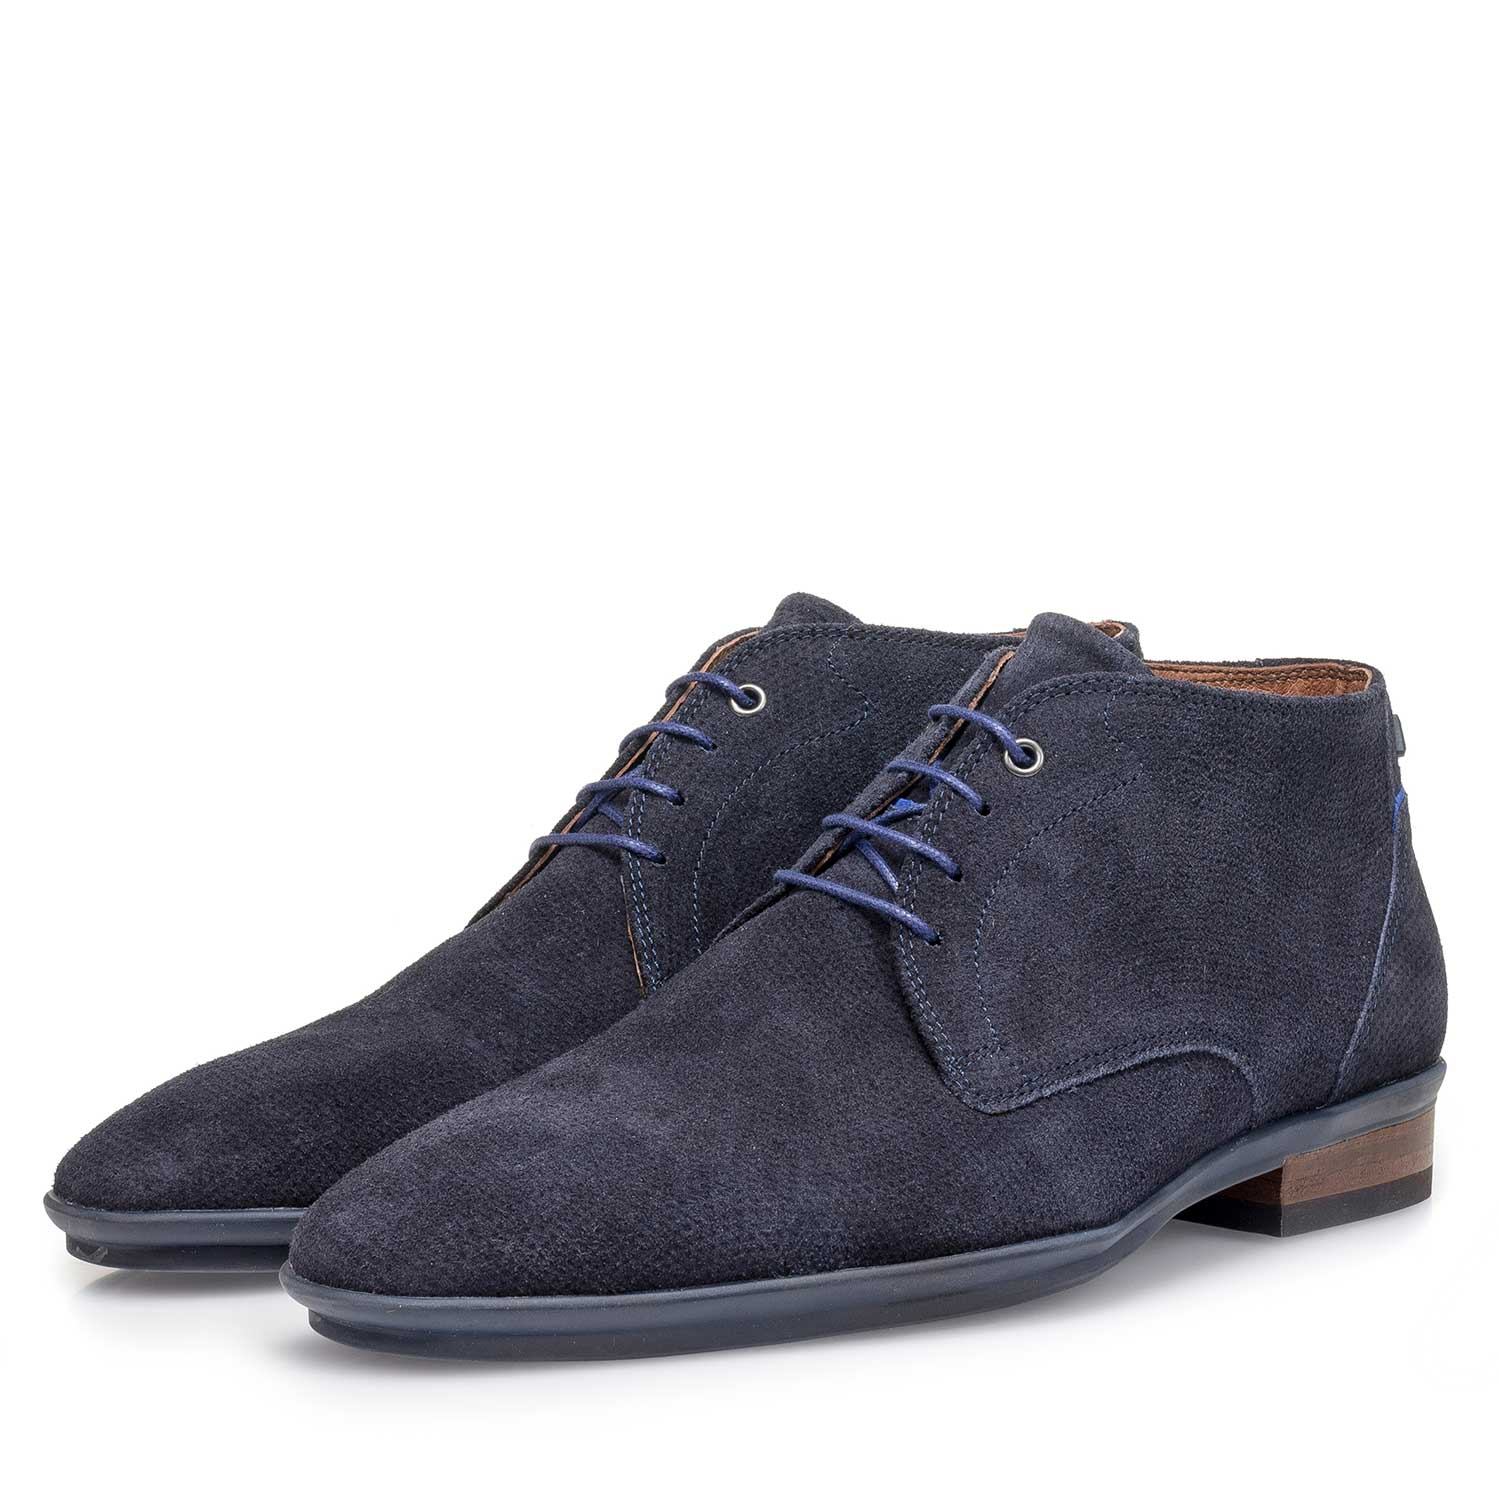 10475/16 - Blue suede leather lace shoe